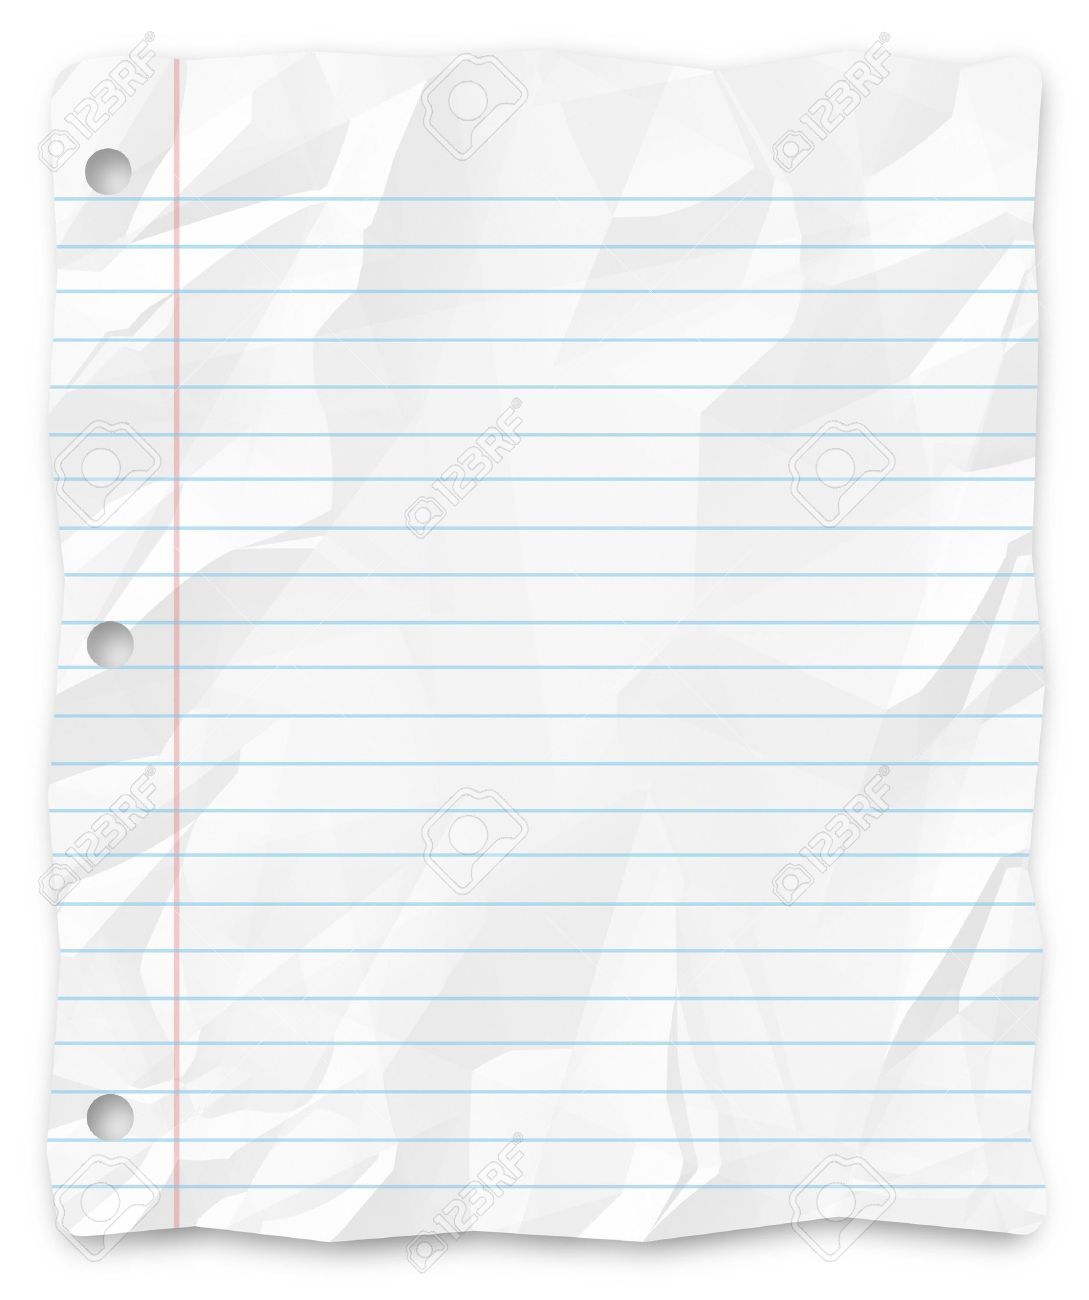 a white, wrinkled piece of lined school paper background for.. stock